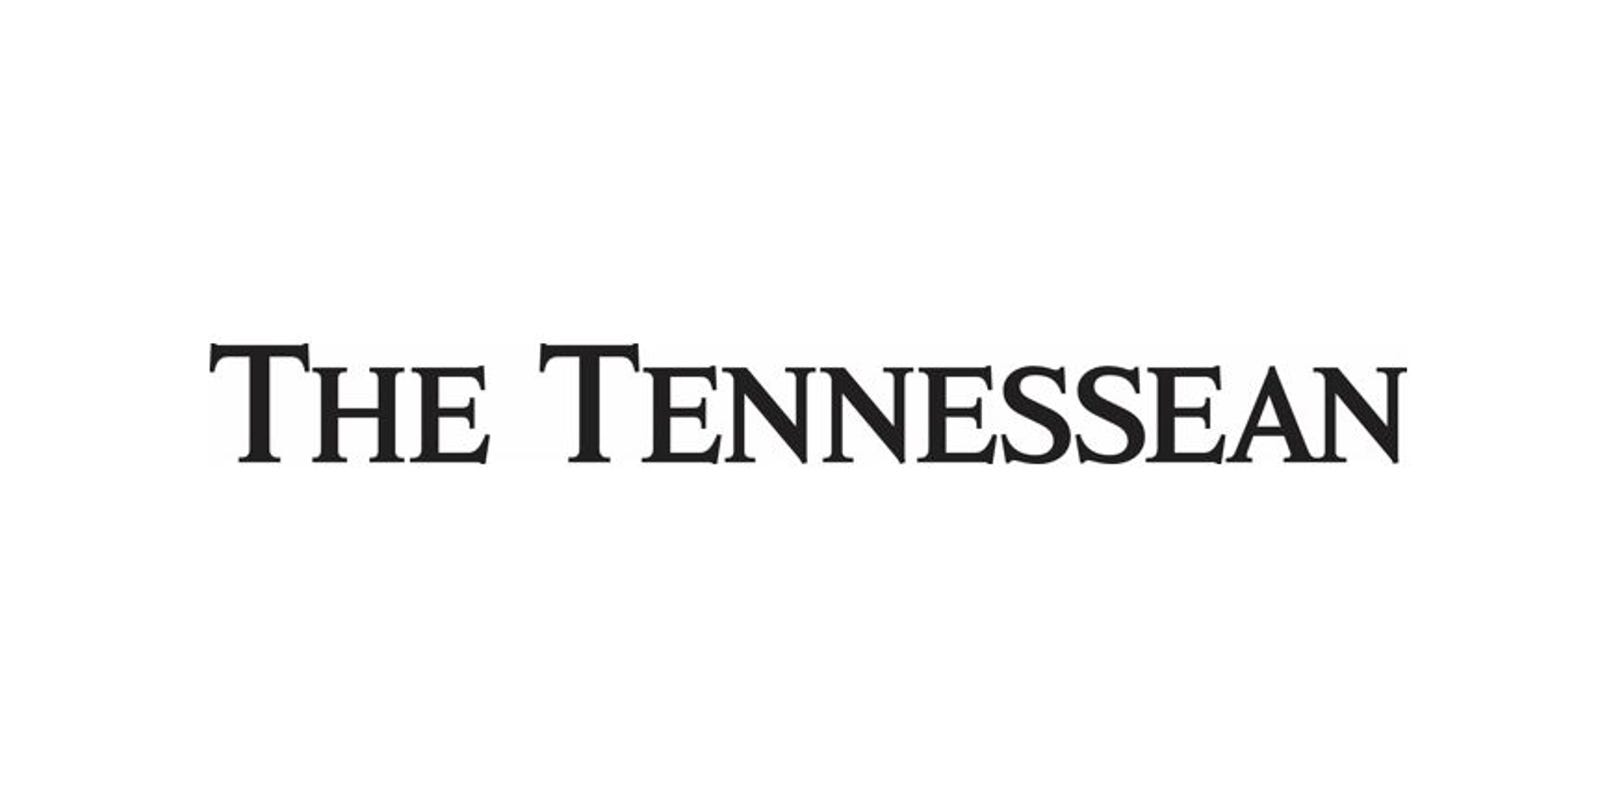 The Tennessean is investigating how an 'indefensible ad' ran in print